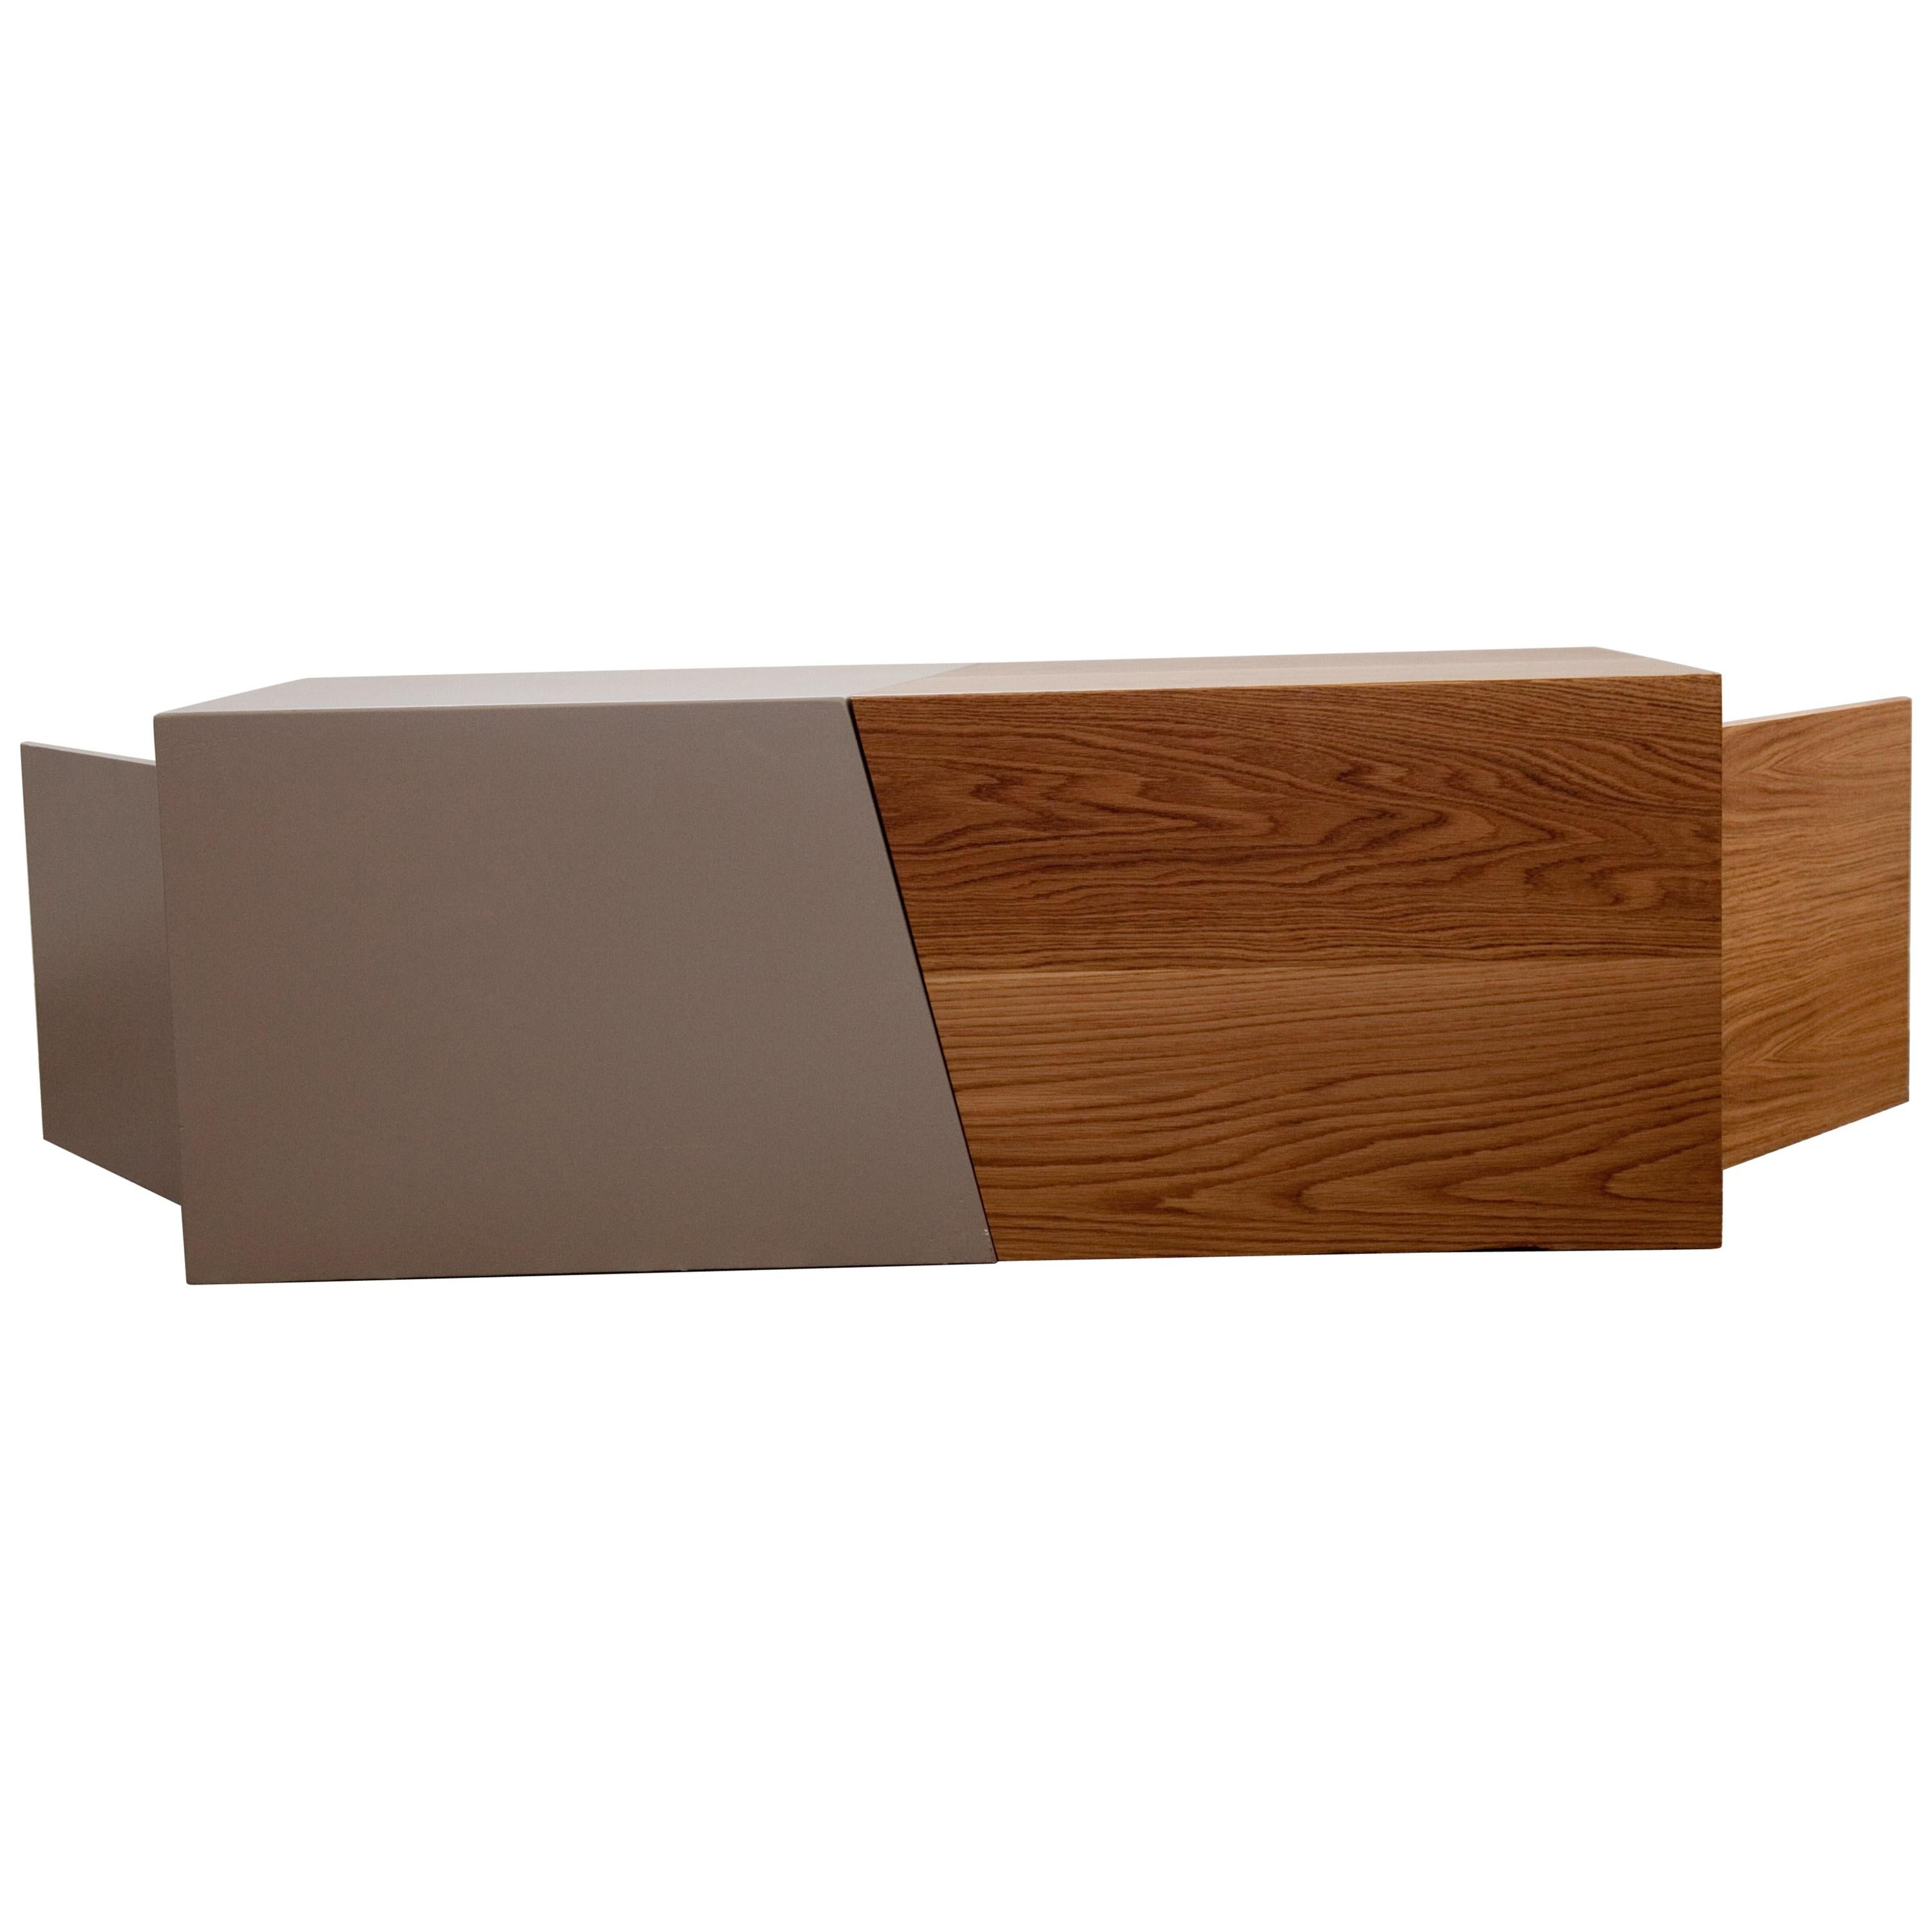 21st Century, Minimalist, European, Coffee table in Lacquer and Oakwood Handmade